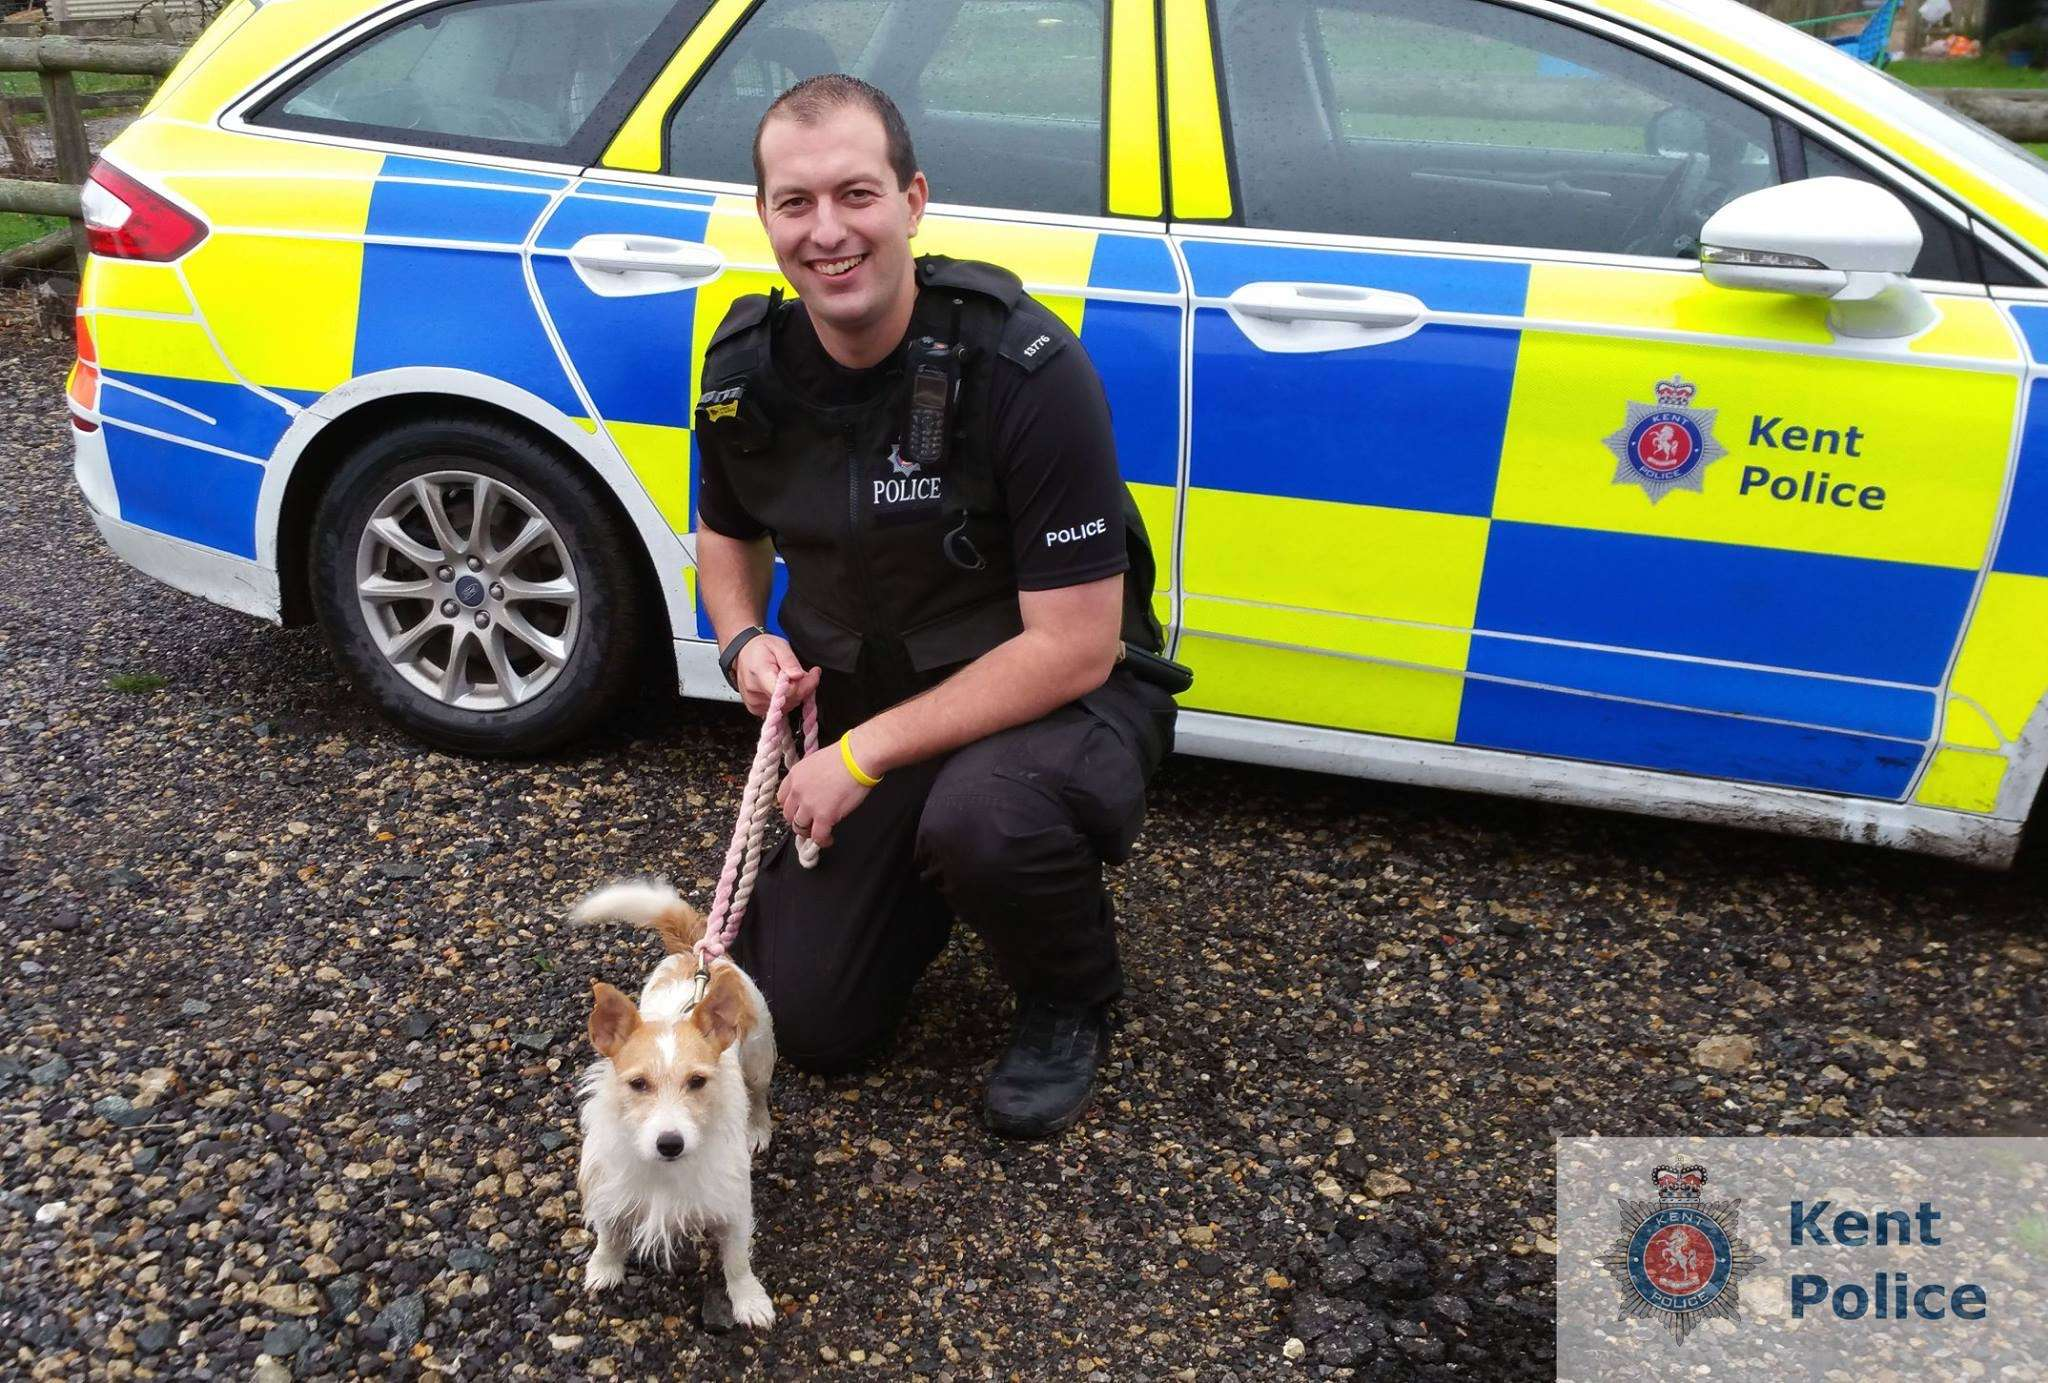 Kent Police: We have re-united a dog with its owners three and a half years after it was reported stolen from Eastchurch, Kent. #PetTheftReform